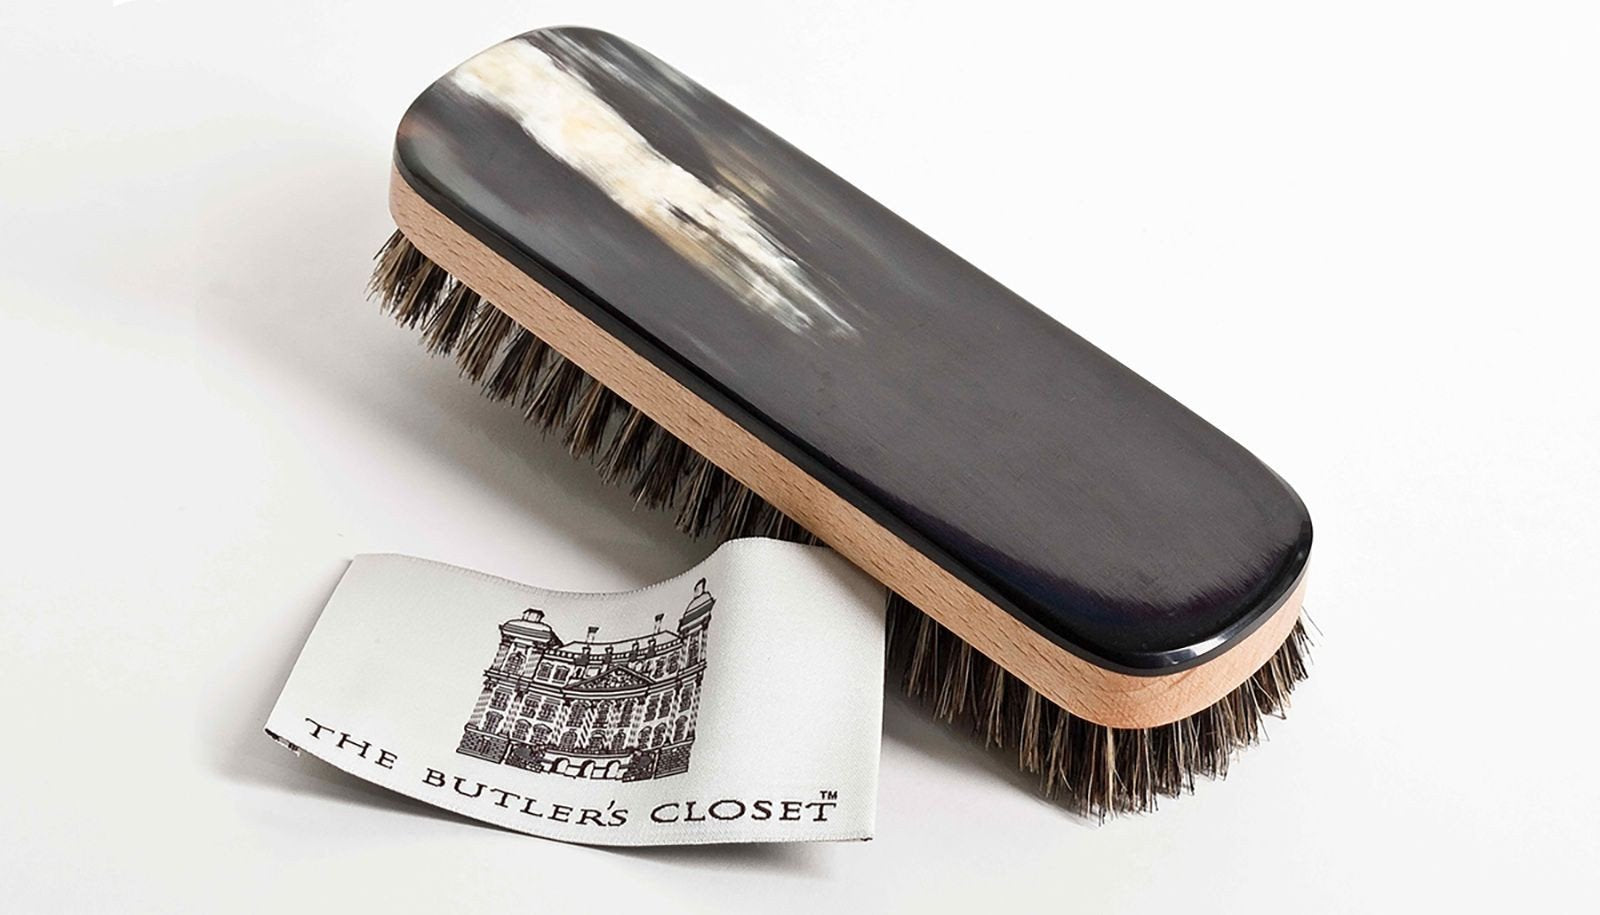 The Butler's Closet English Horn Clothes Brush